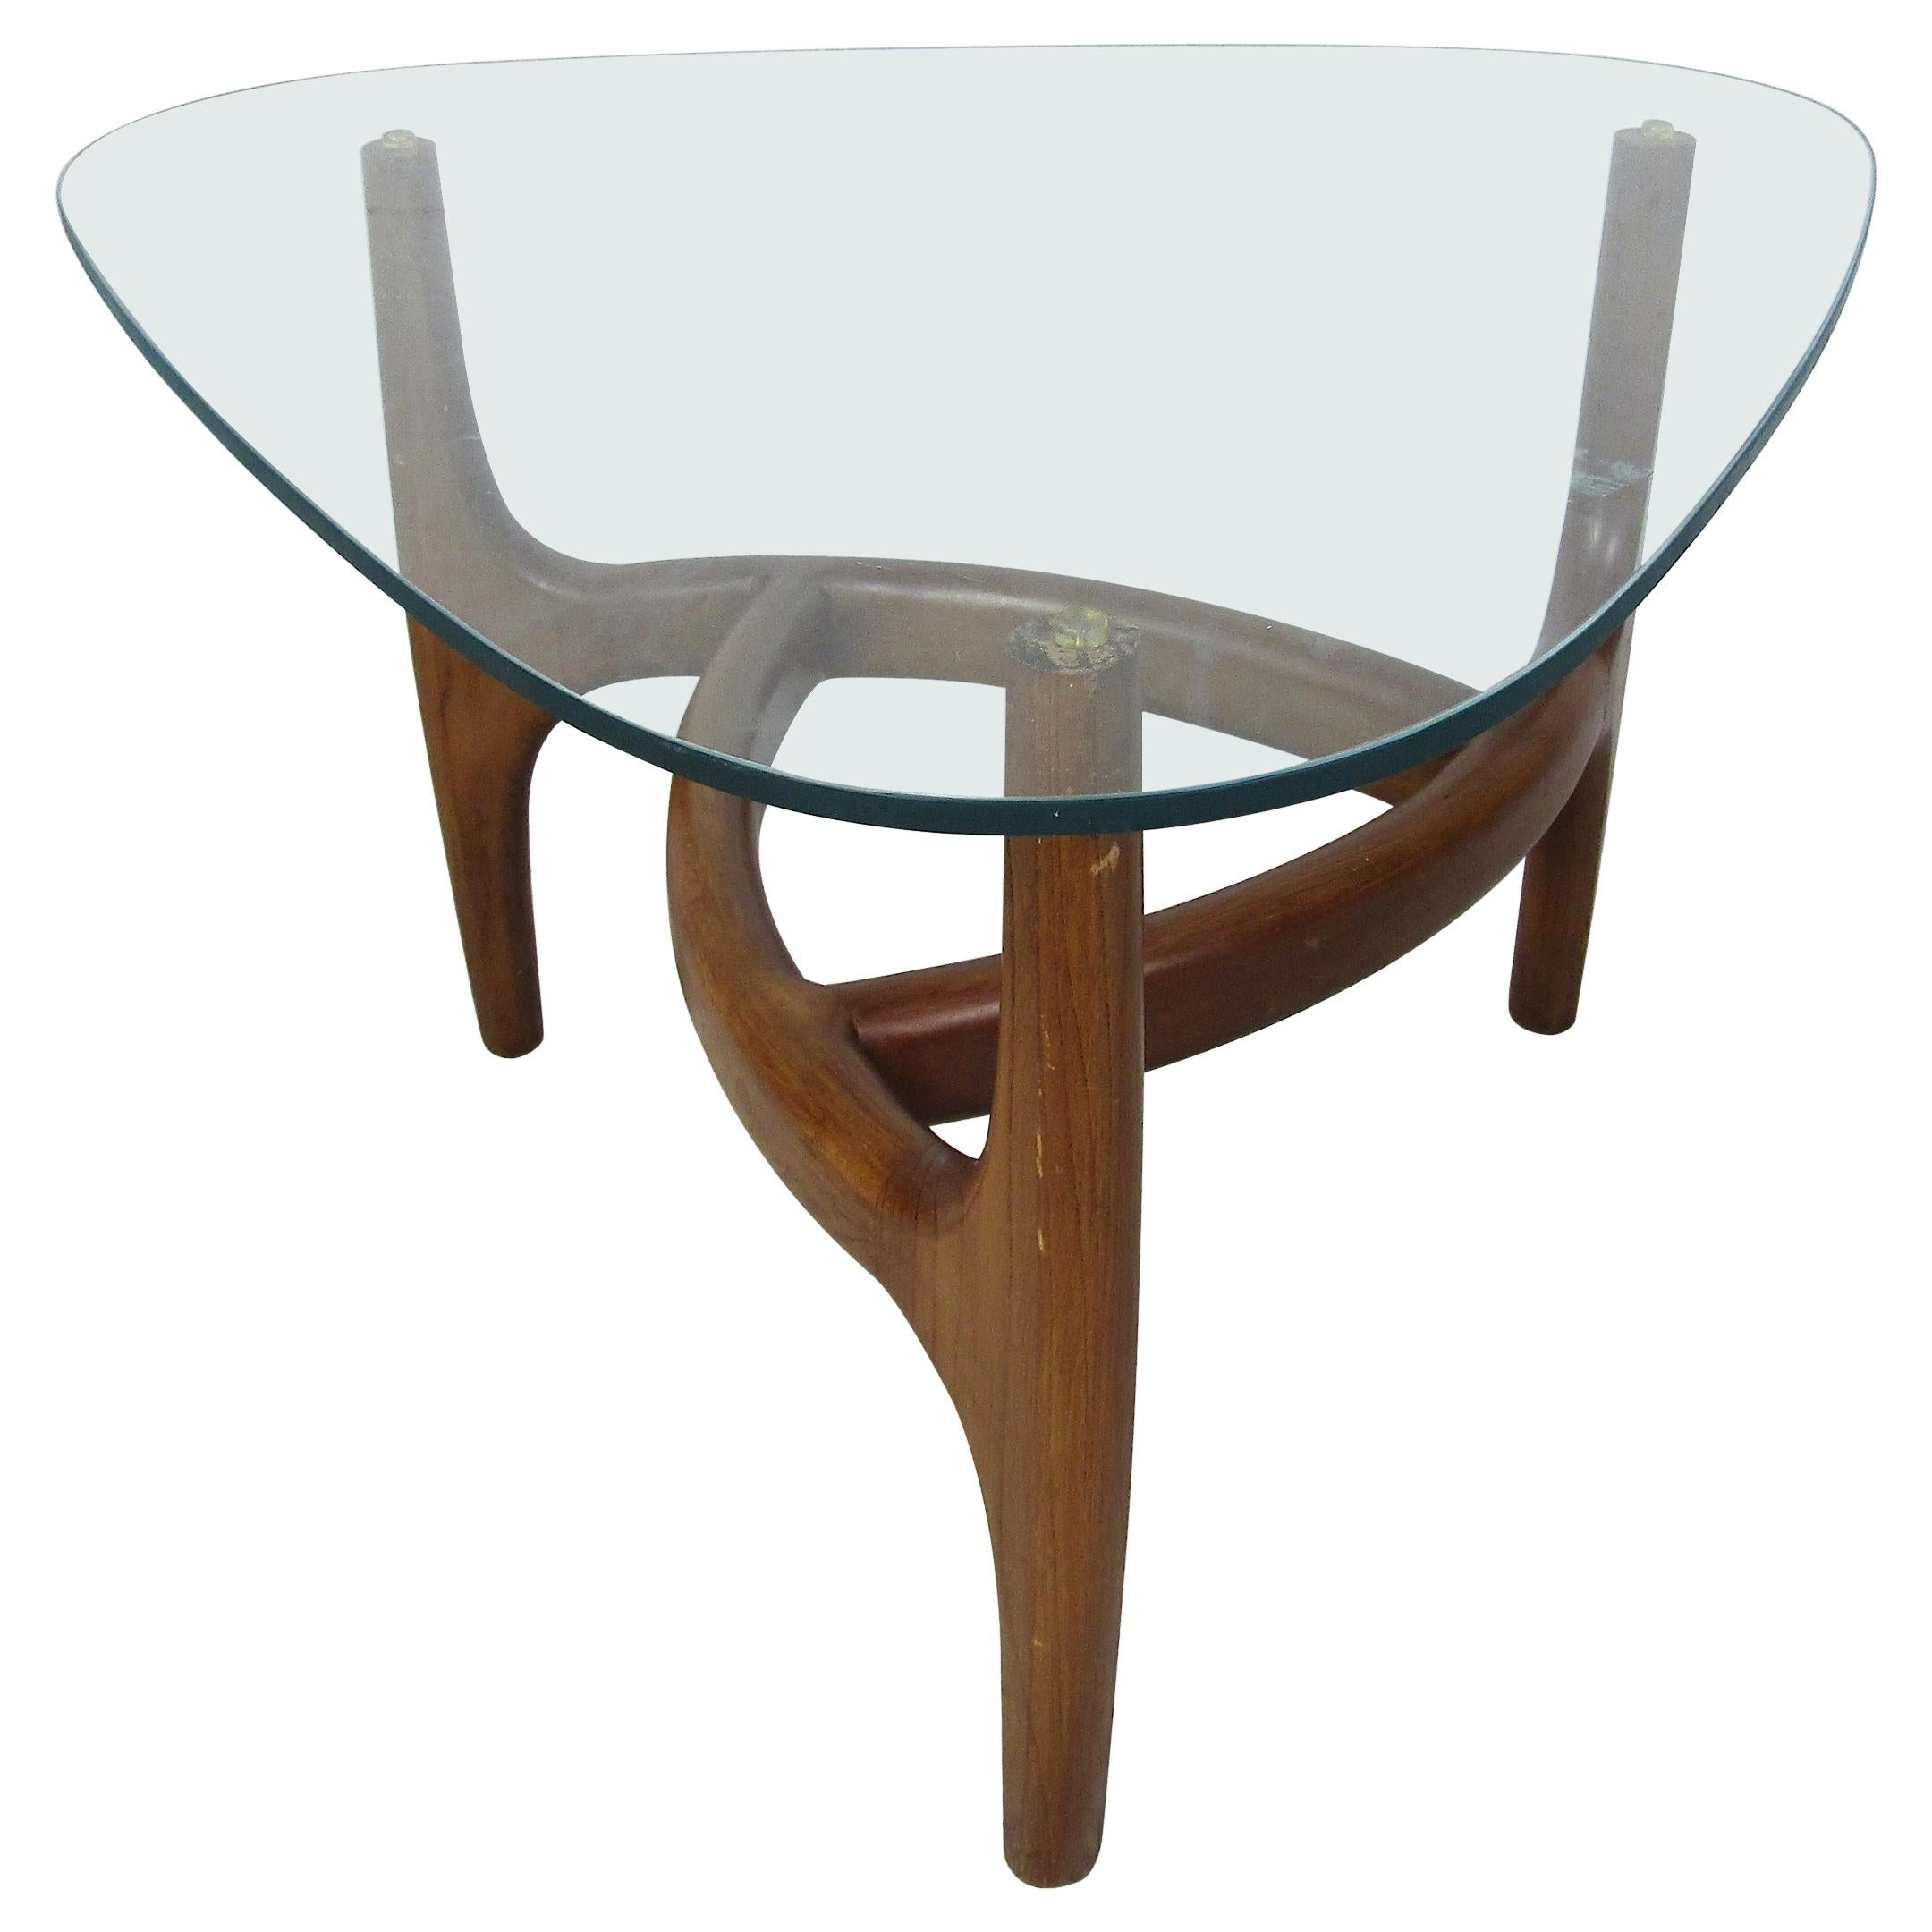 Petite Midcentury Coffee Table by Adrian Pearsall for Craft Associates